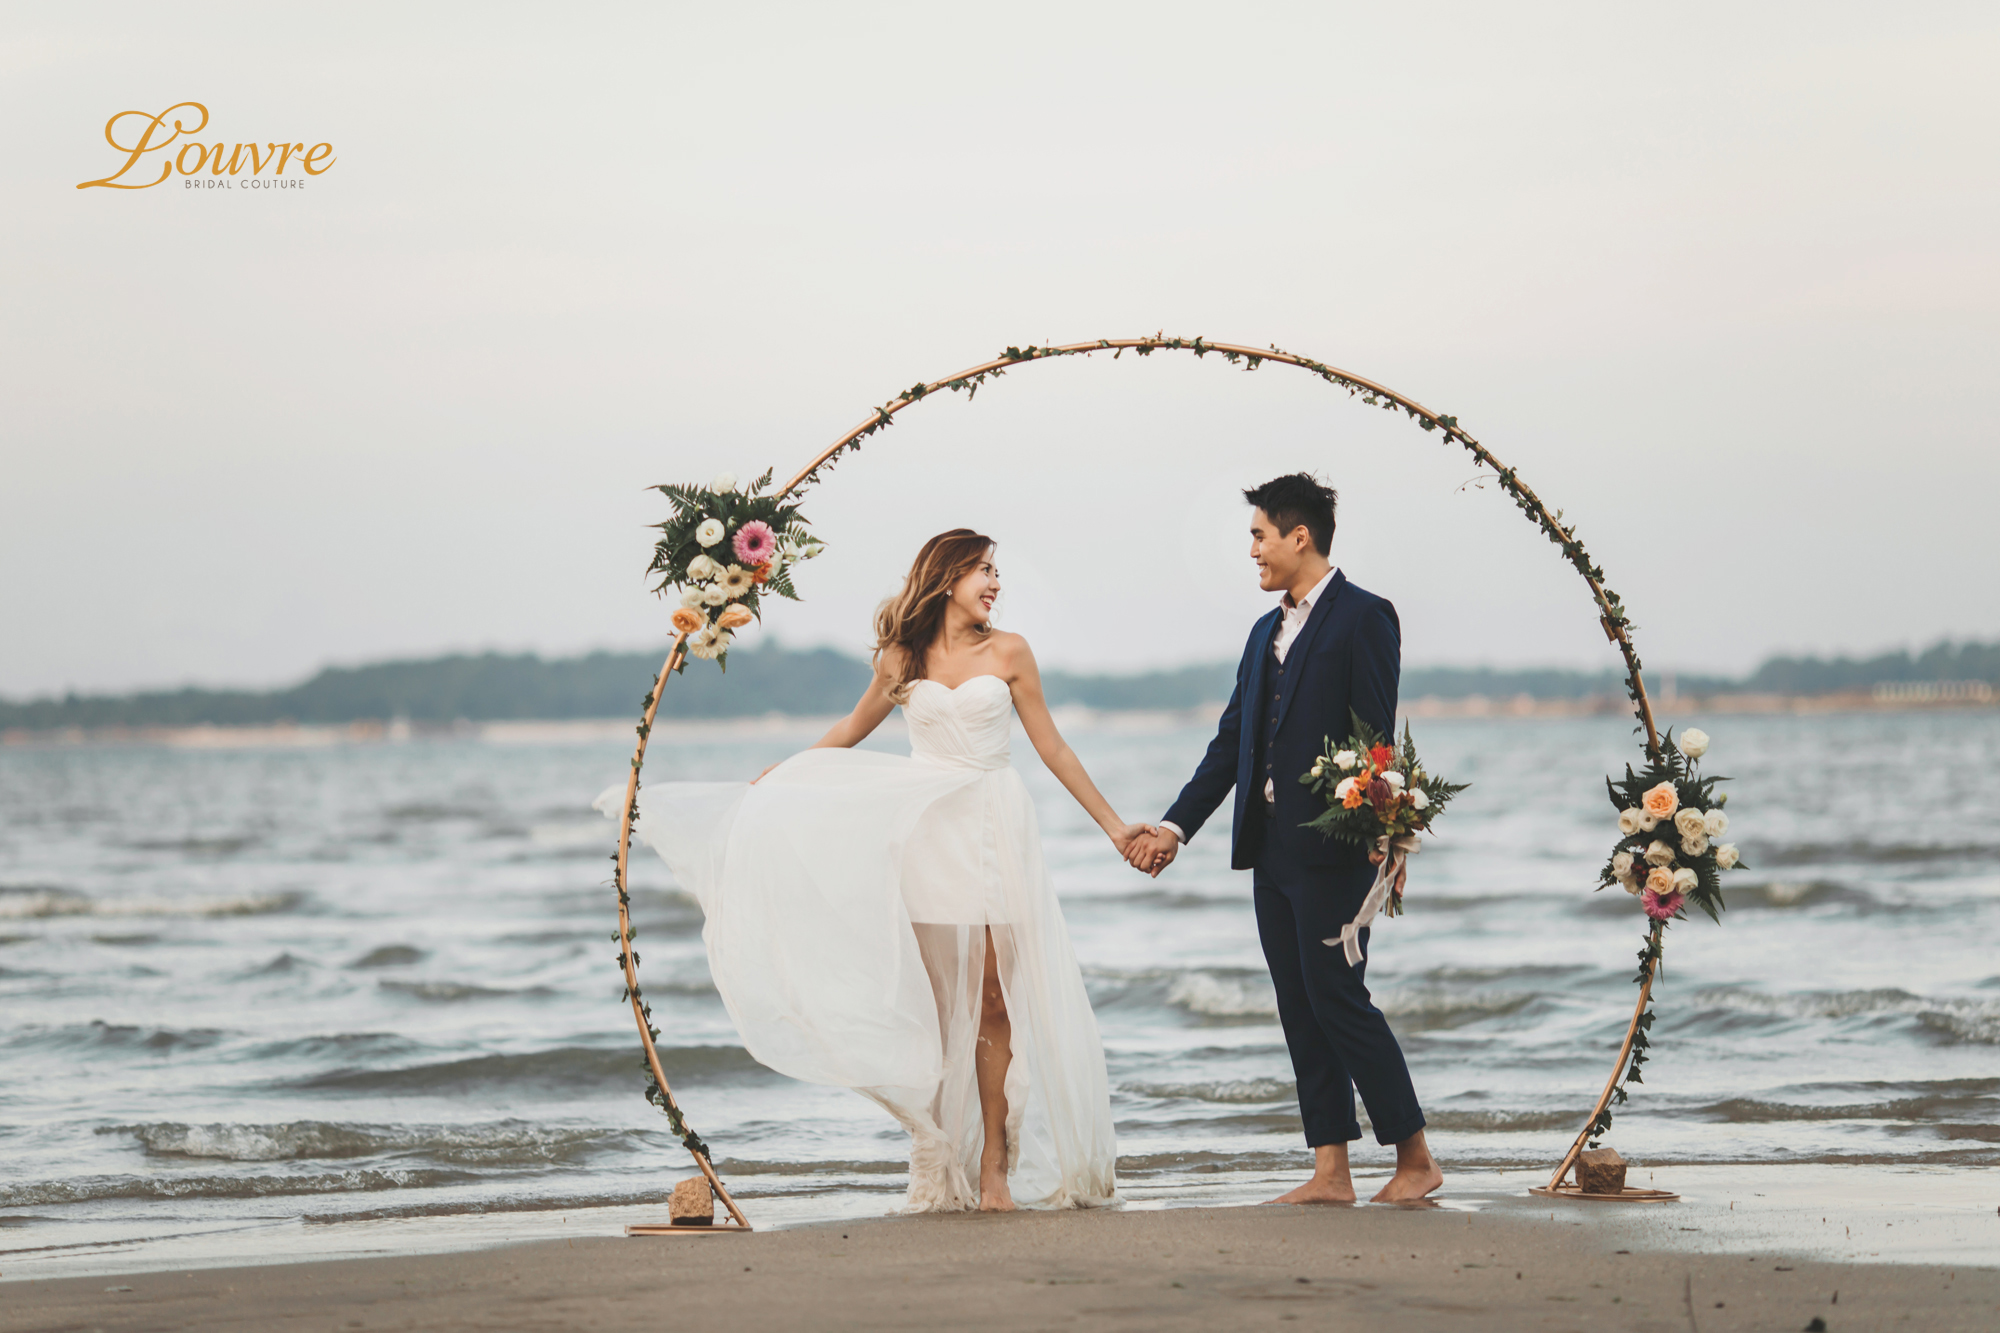 Beach Wedding Dress: 5 Beach Themed Wedding Inspirations For Singapore Brides